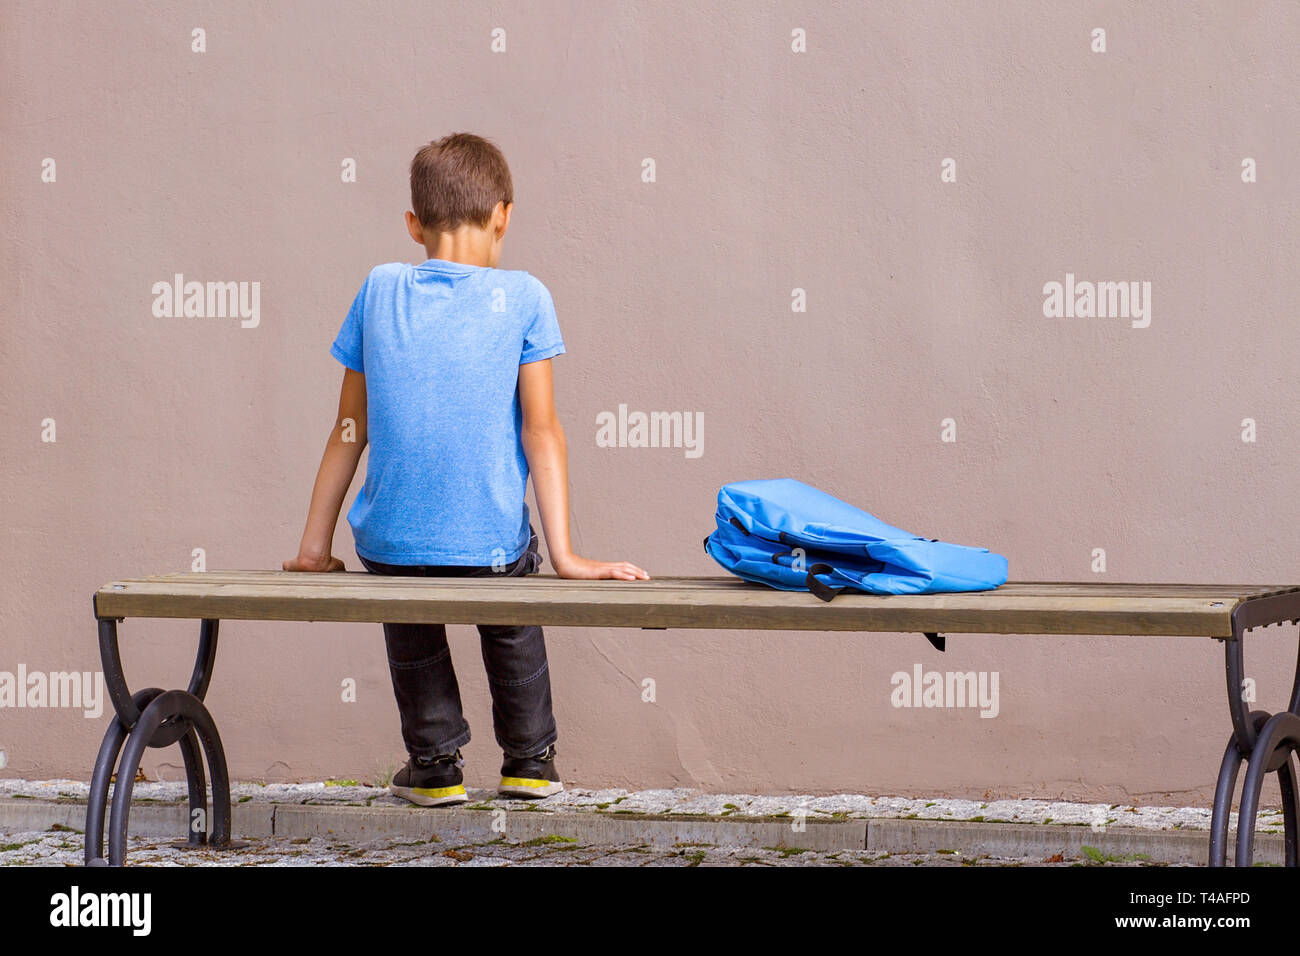 Sad alone child sitting on the bench outdoors - Stock Image